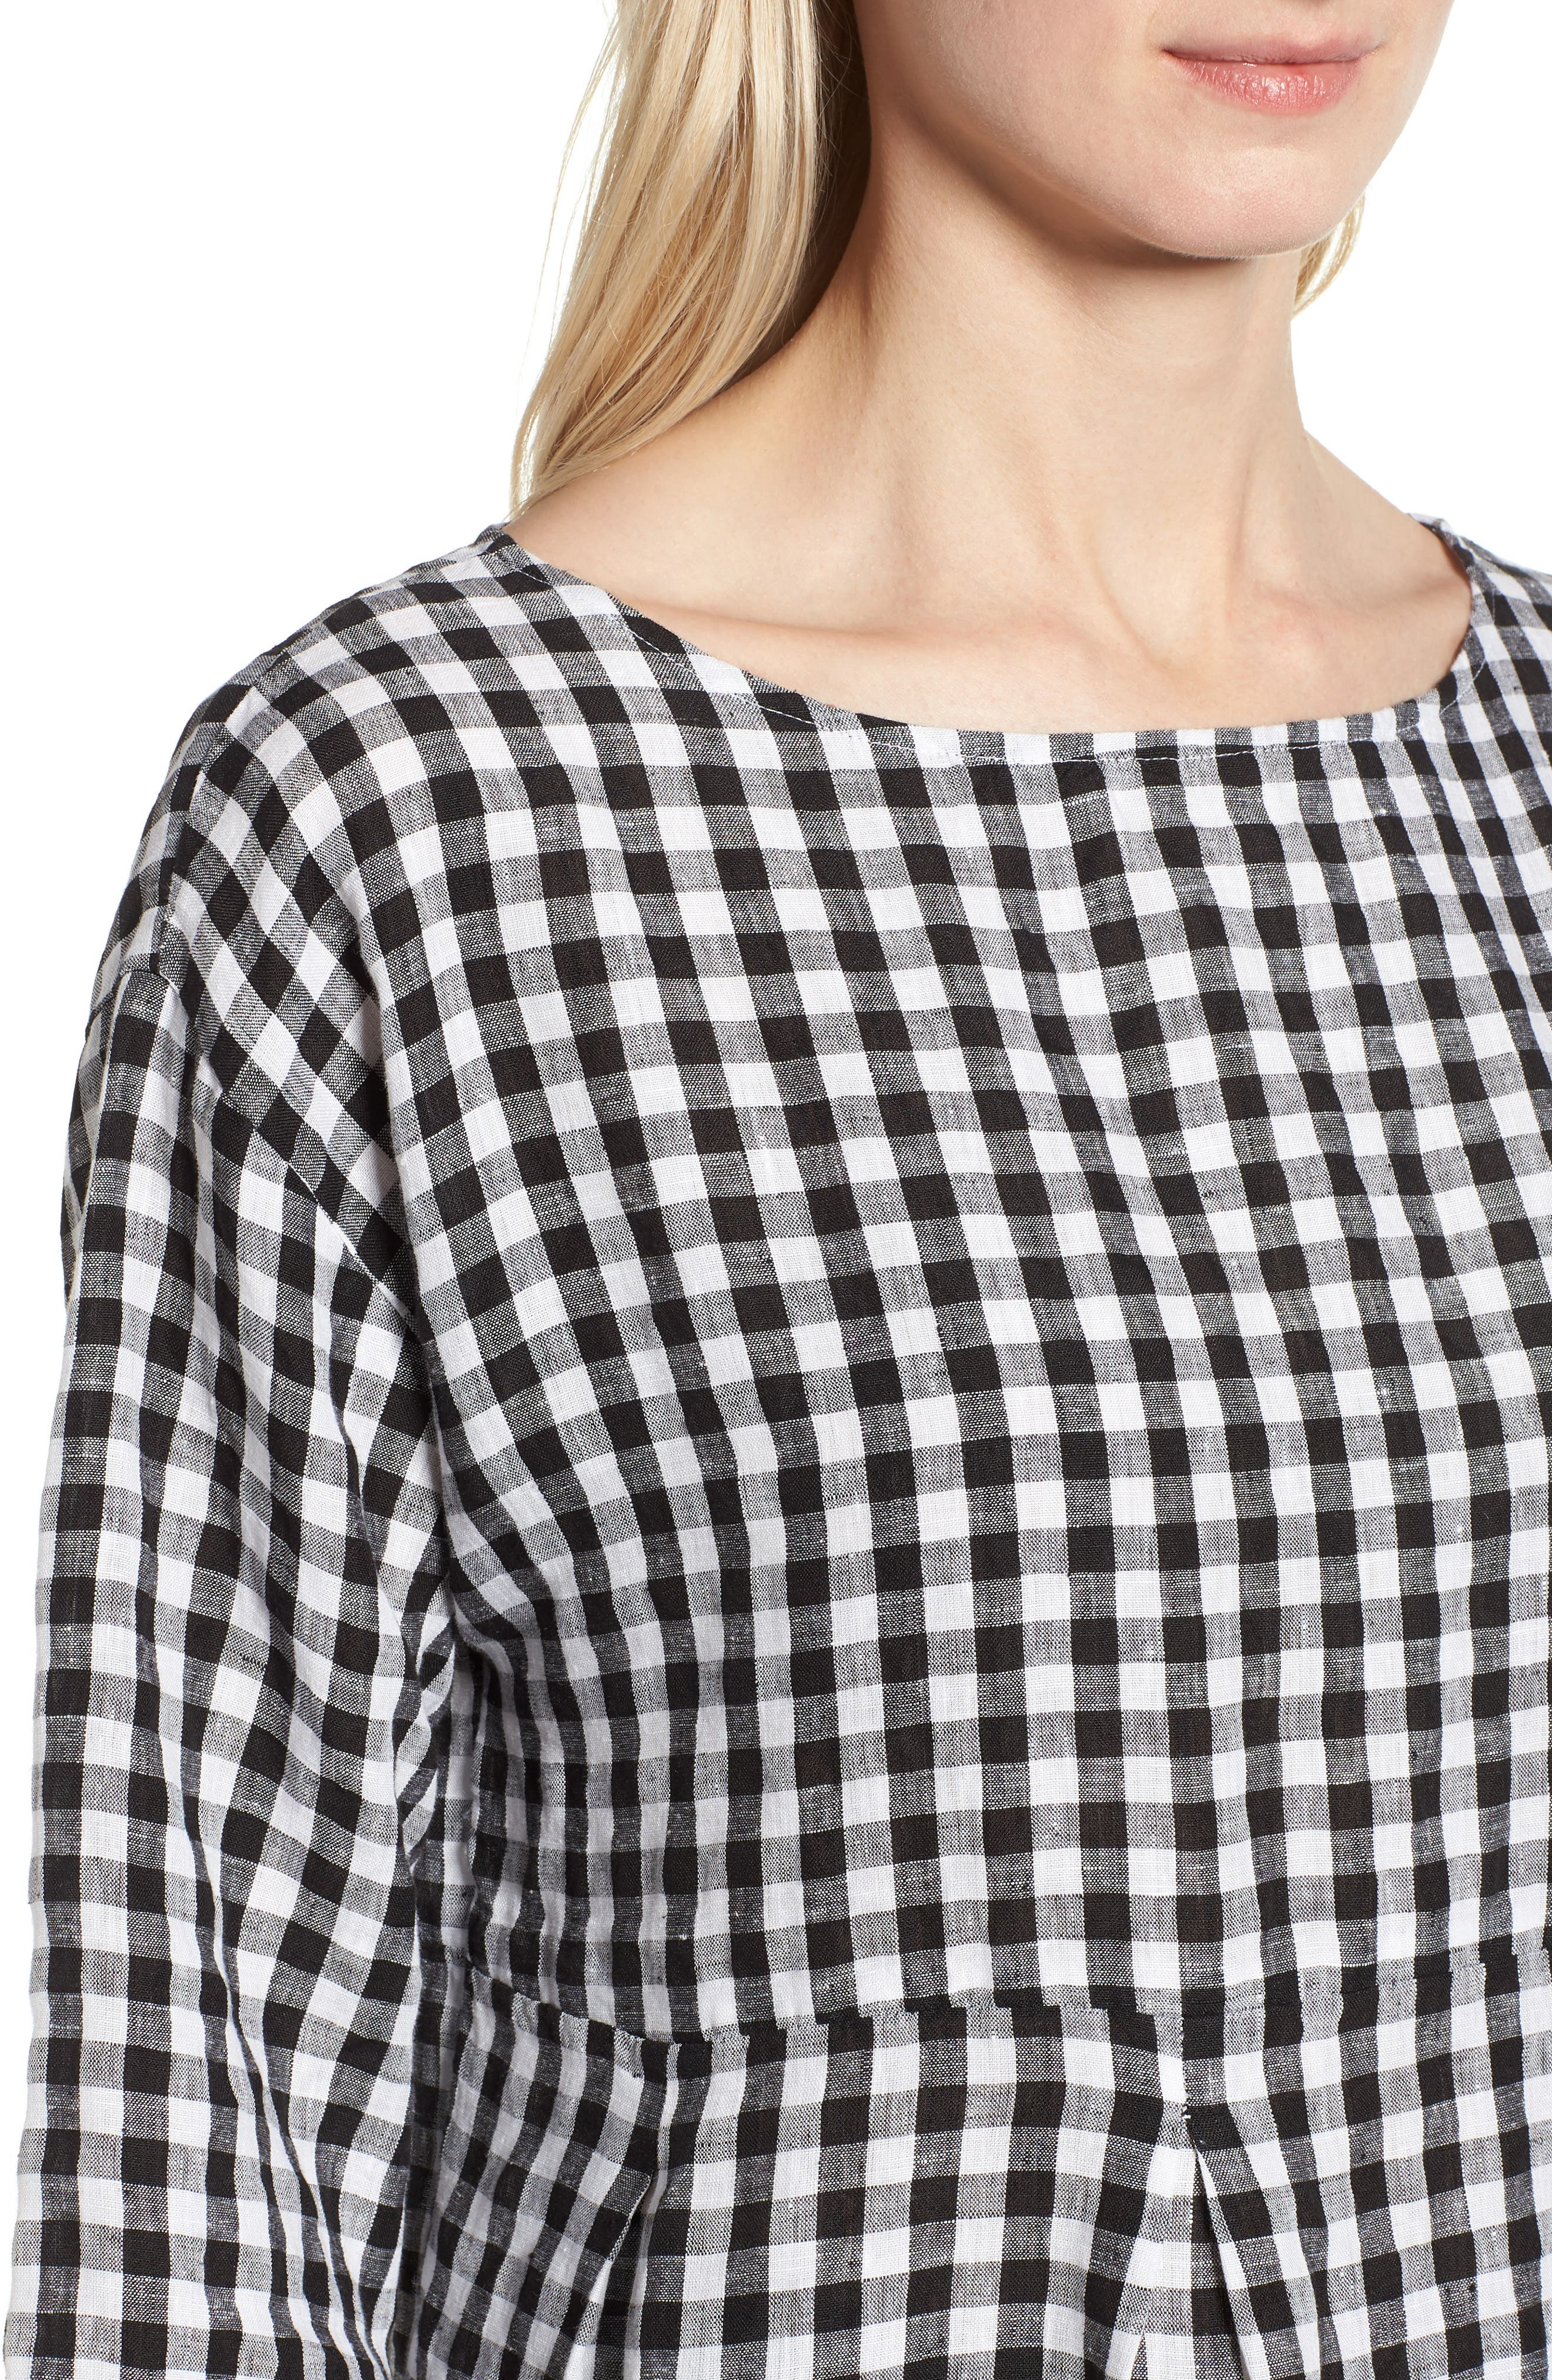 Gingham Organic Linen Top,                             Alternate thumbnail 4, color,                             018